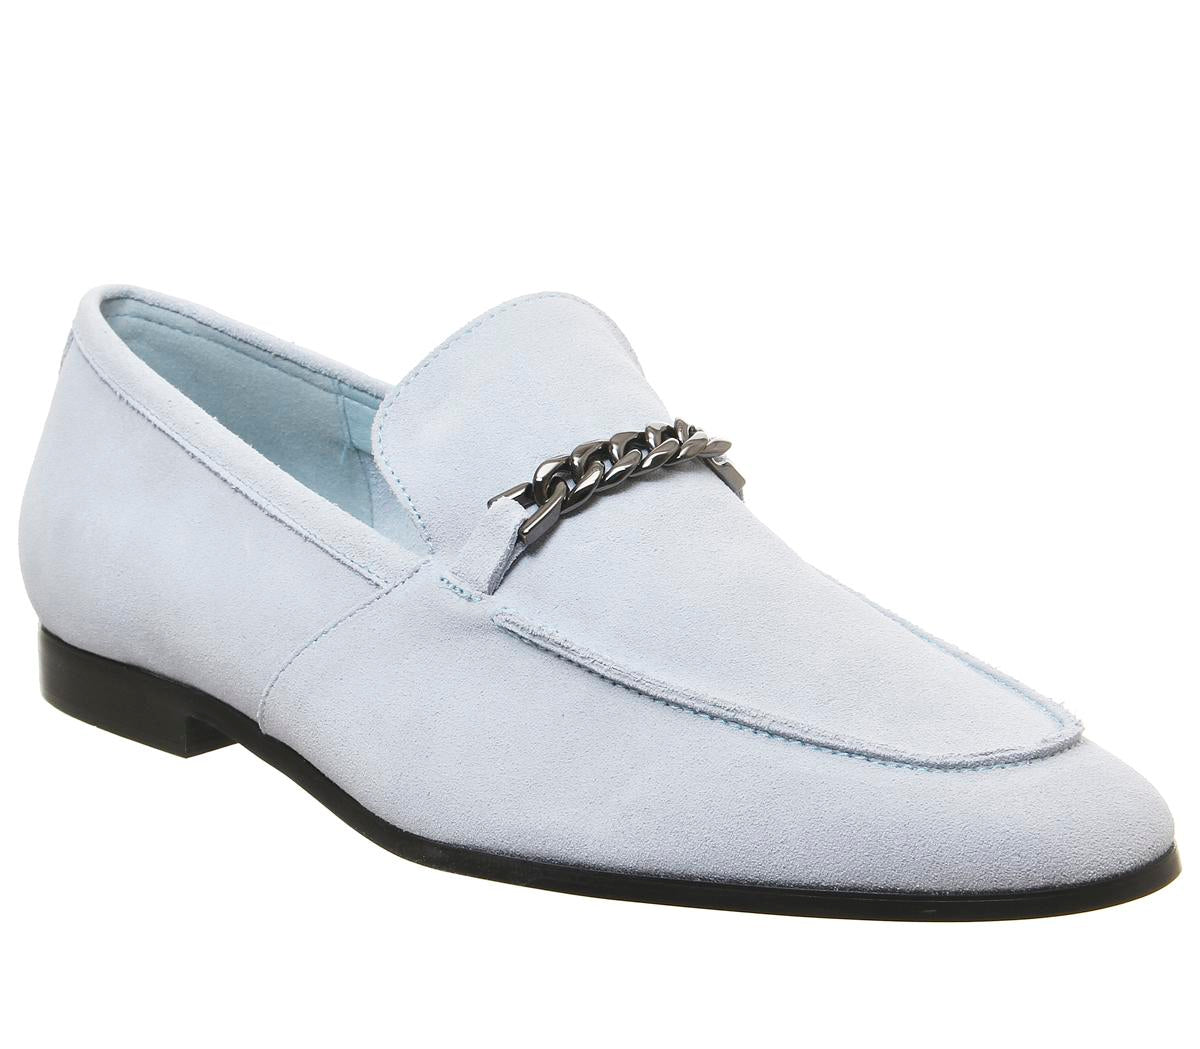 Mens Office Lion Chain Loafer Light Blue Suede